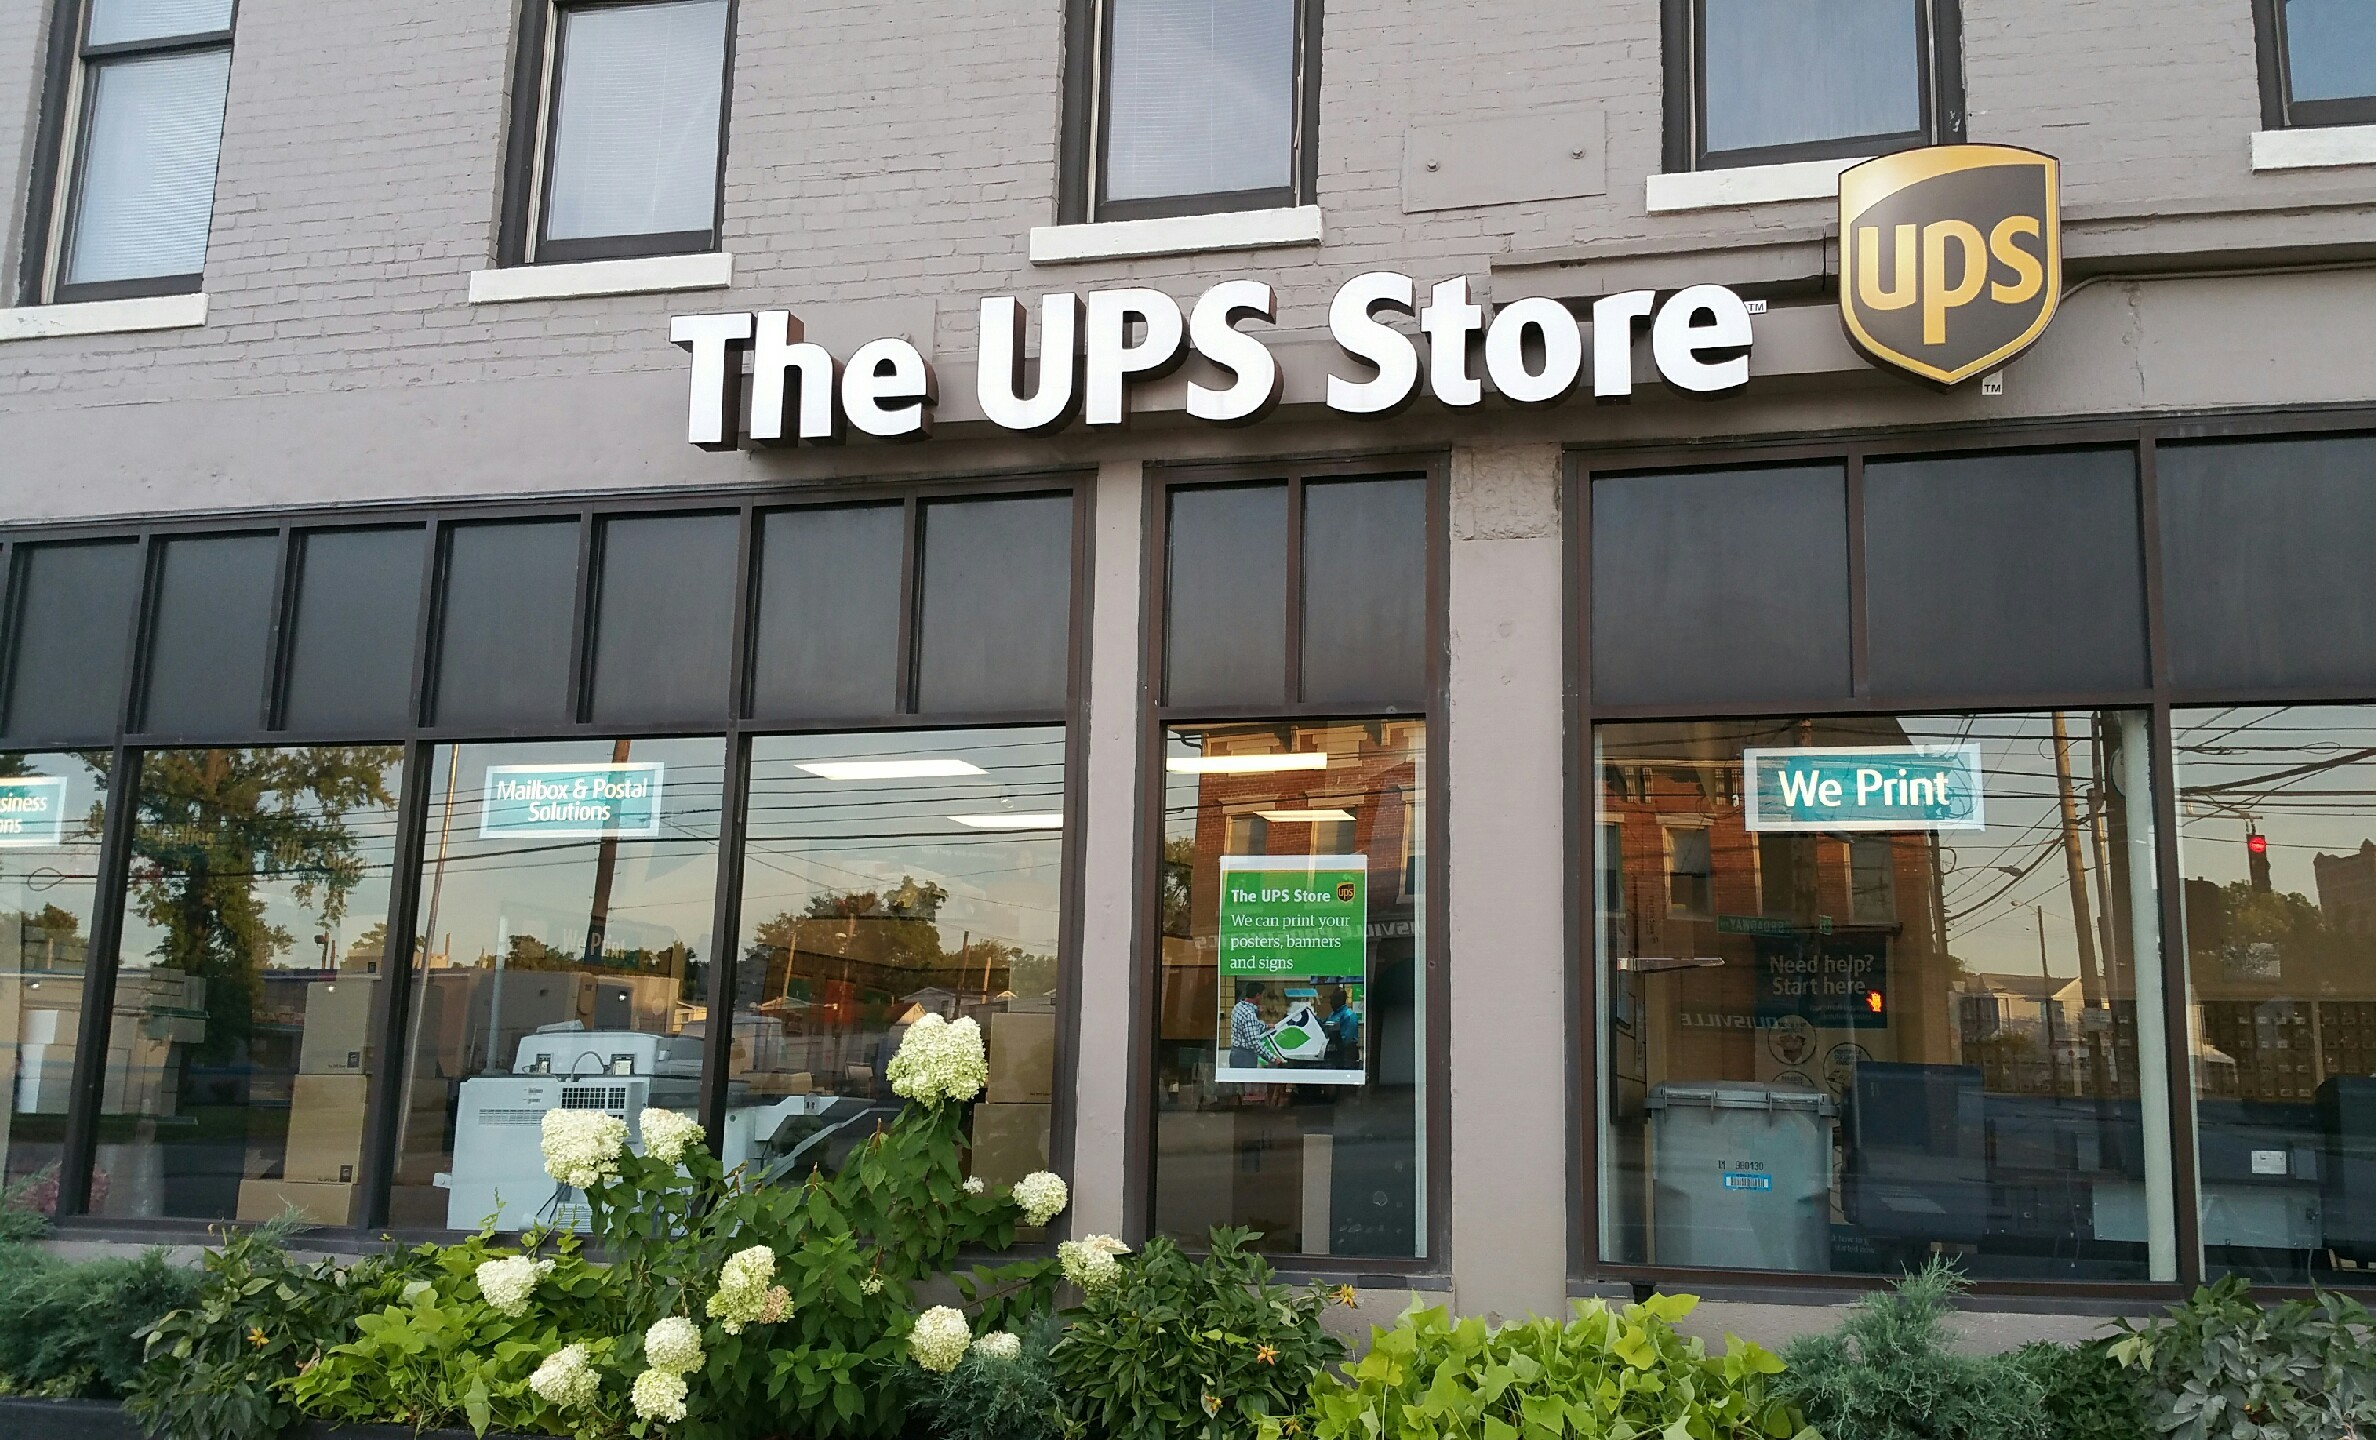 UPS - United Parcel Service in Rochester, New York: complete list of store locations, hours, holiday hours, phone numbers, and services. Find UPS - United Parcel Service location near you. UPS - United Parcel Service Locations & Hours in Rochester, New York.